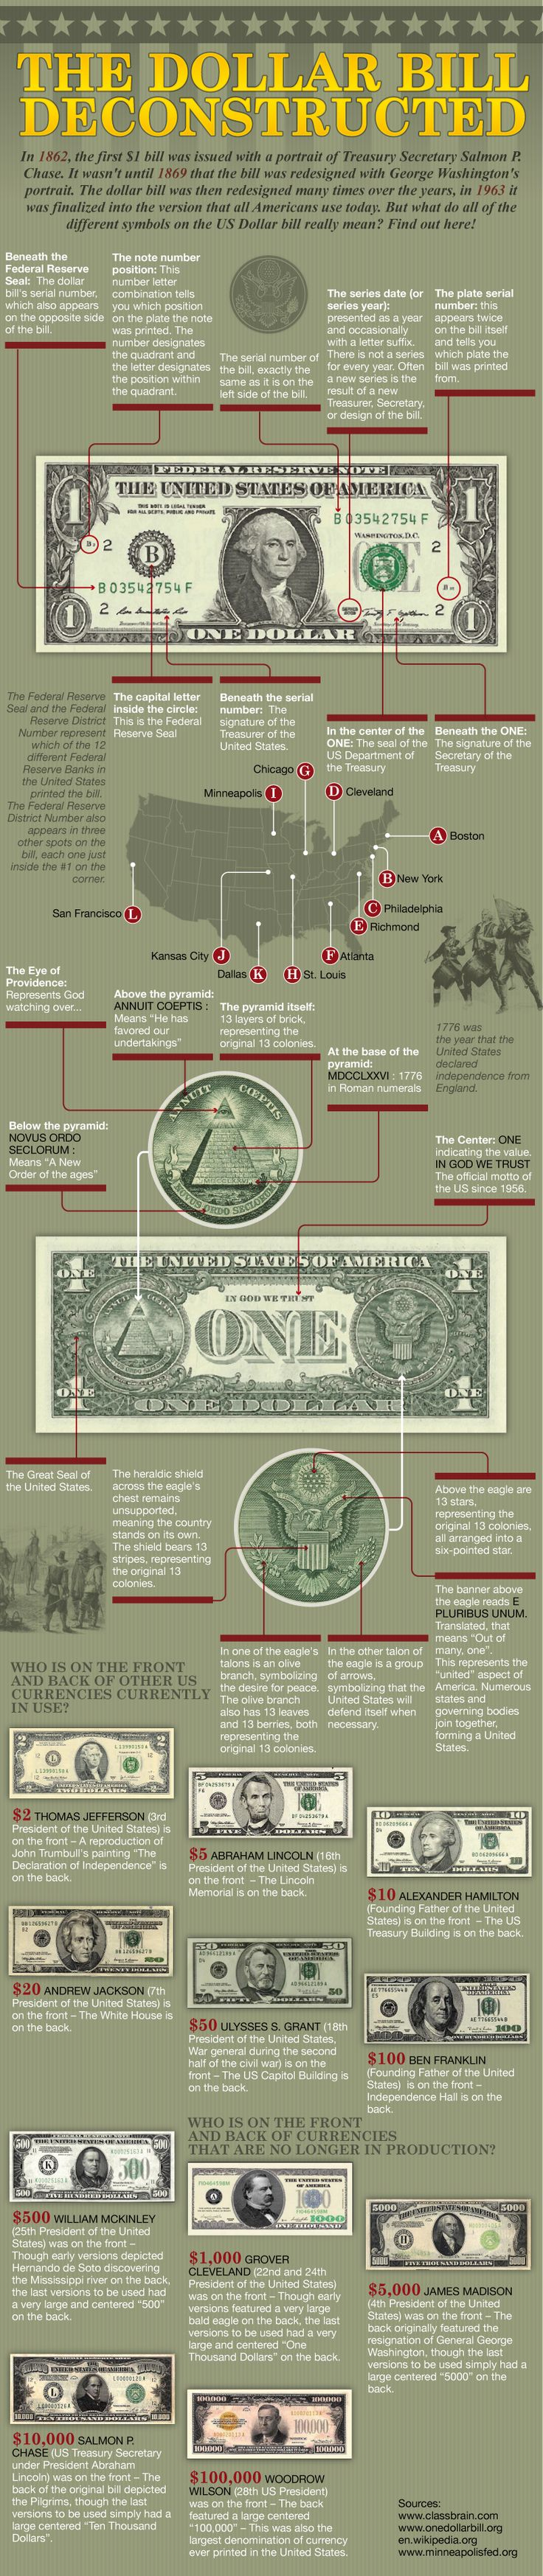 The US dollar bill has been redesigned many times over the years, in 1963 it was finalized into the version that all Americans use today. But what do